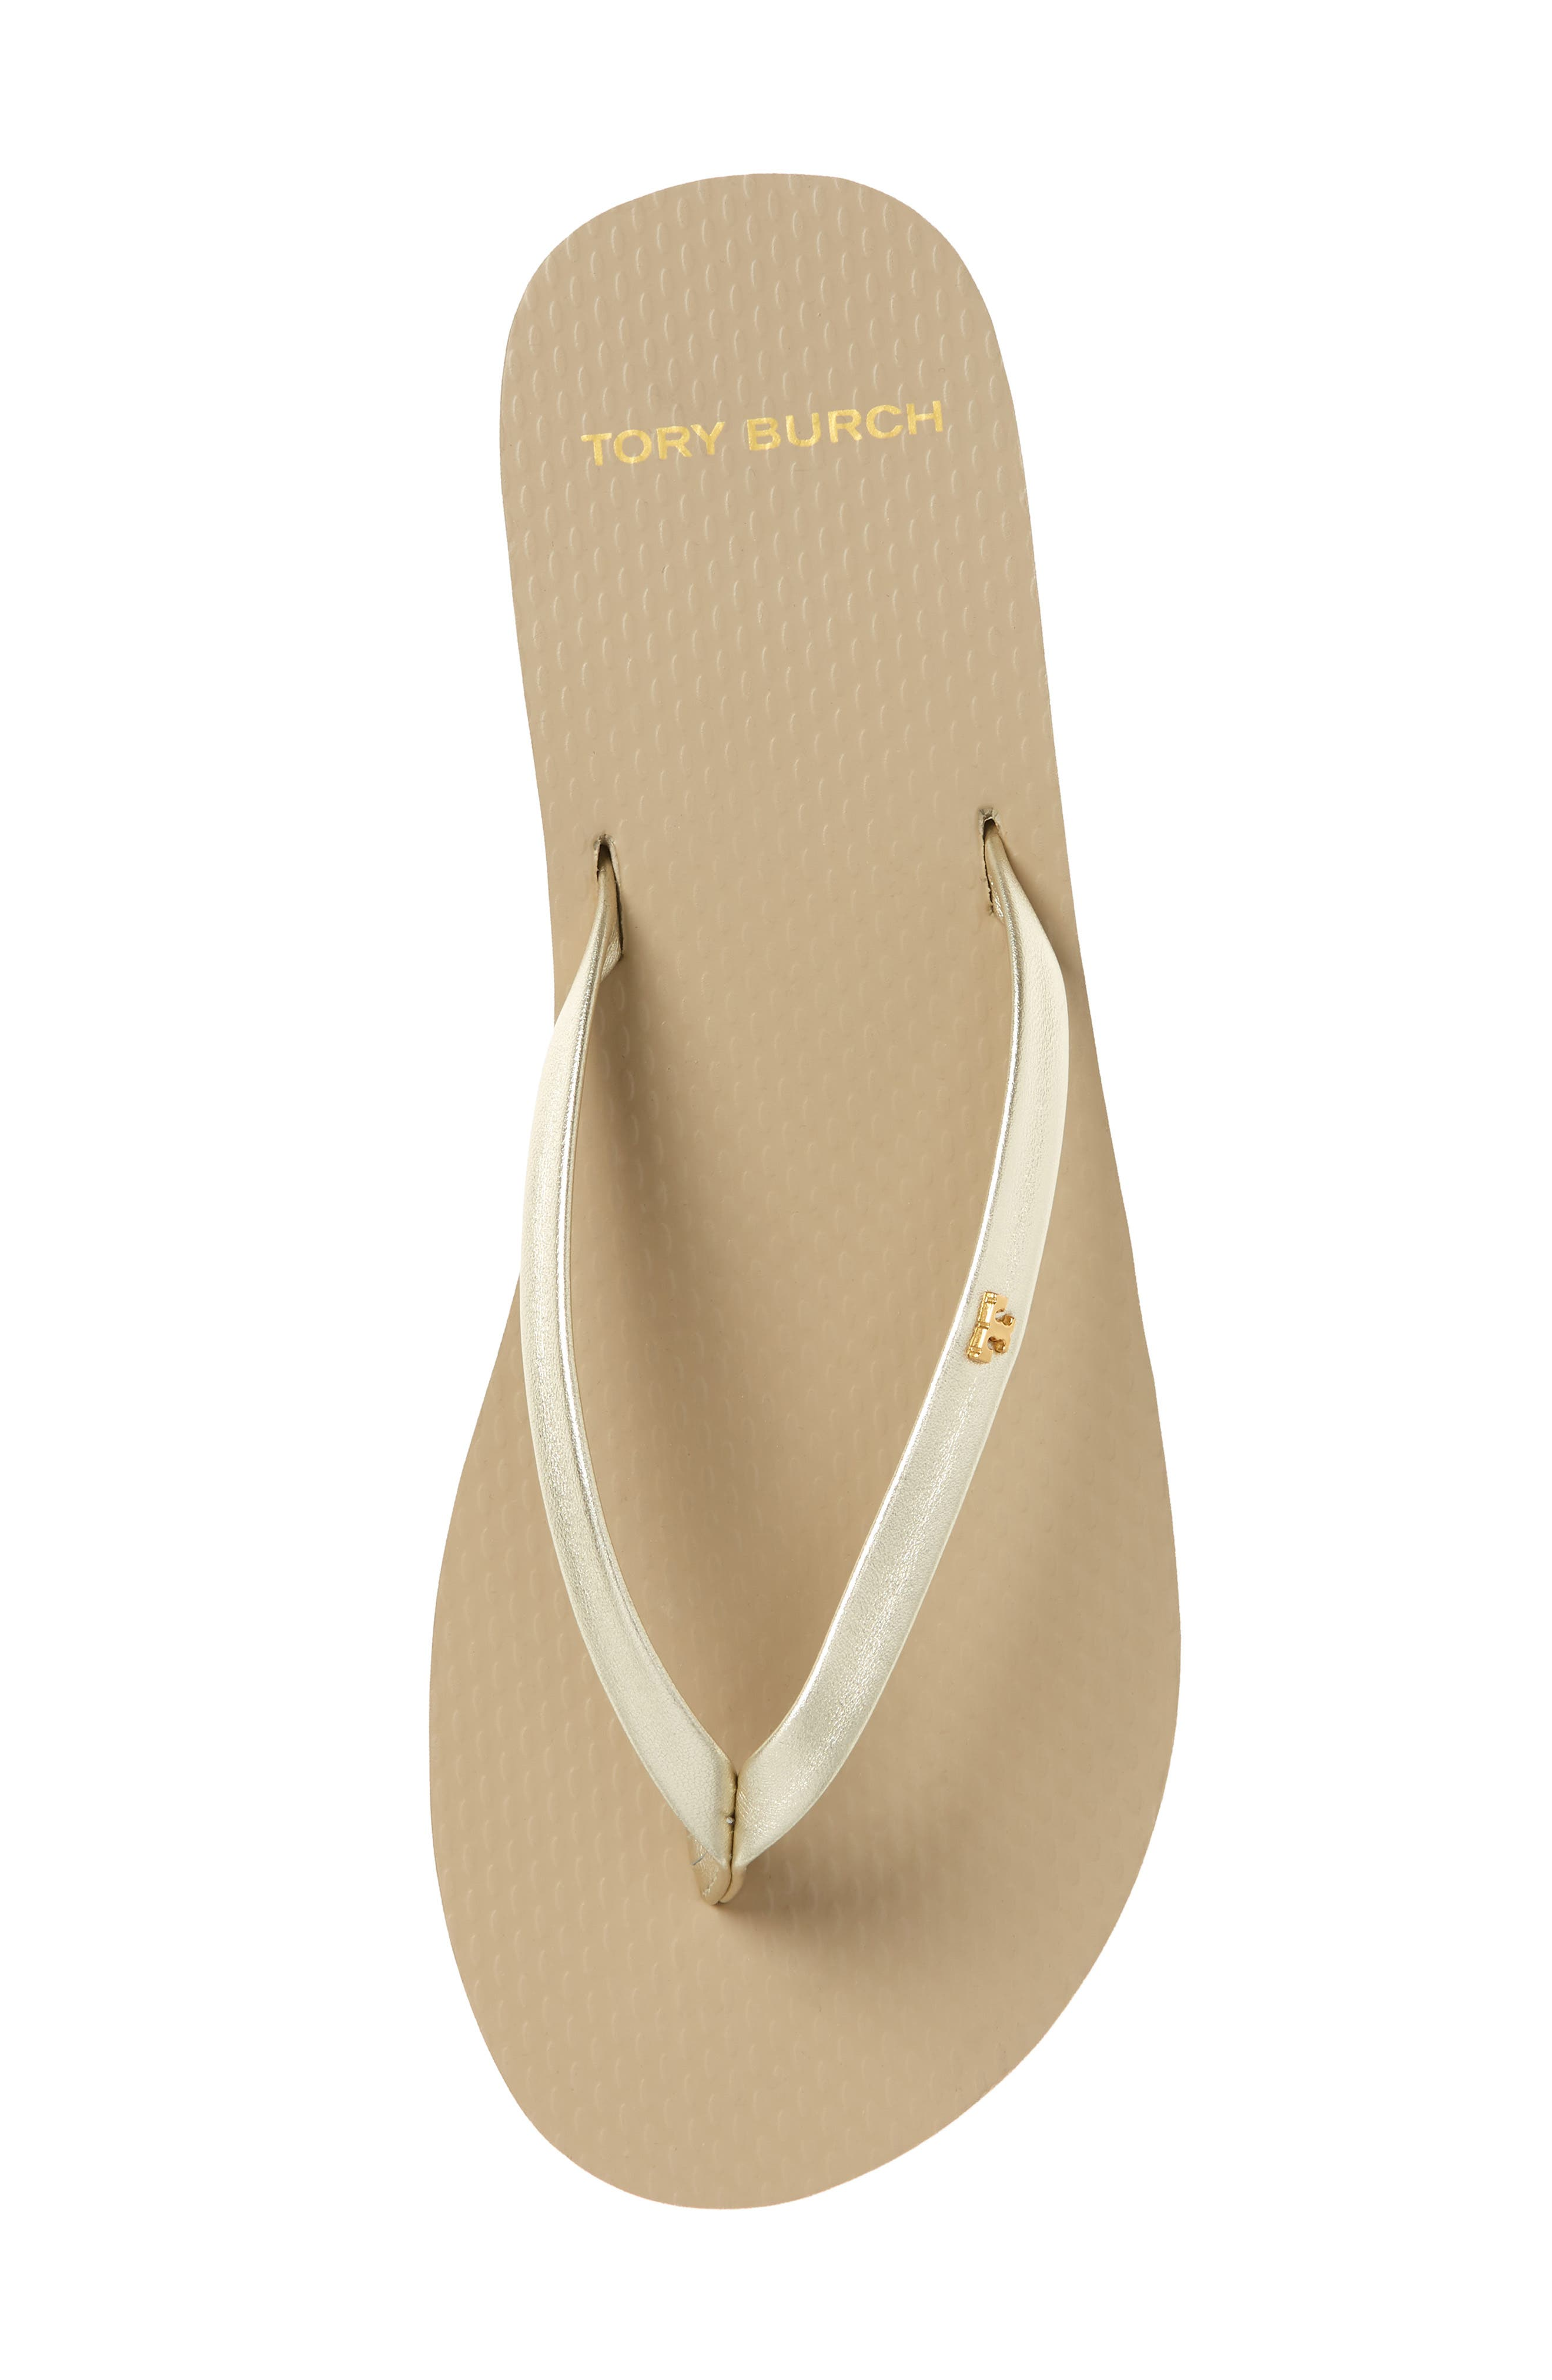 TORY BURCH, Logo Metallic Flip Flop, Alternate thumbnail 5, color, SPARK GOLD/ LIGHT TAUPE